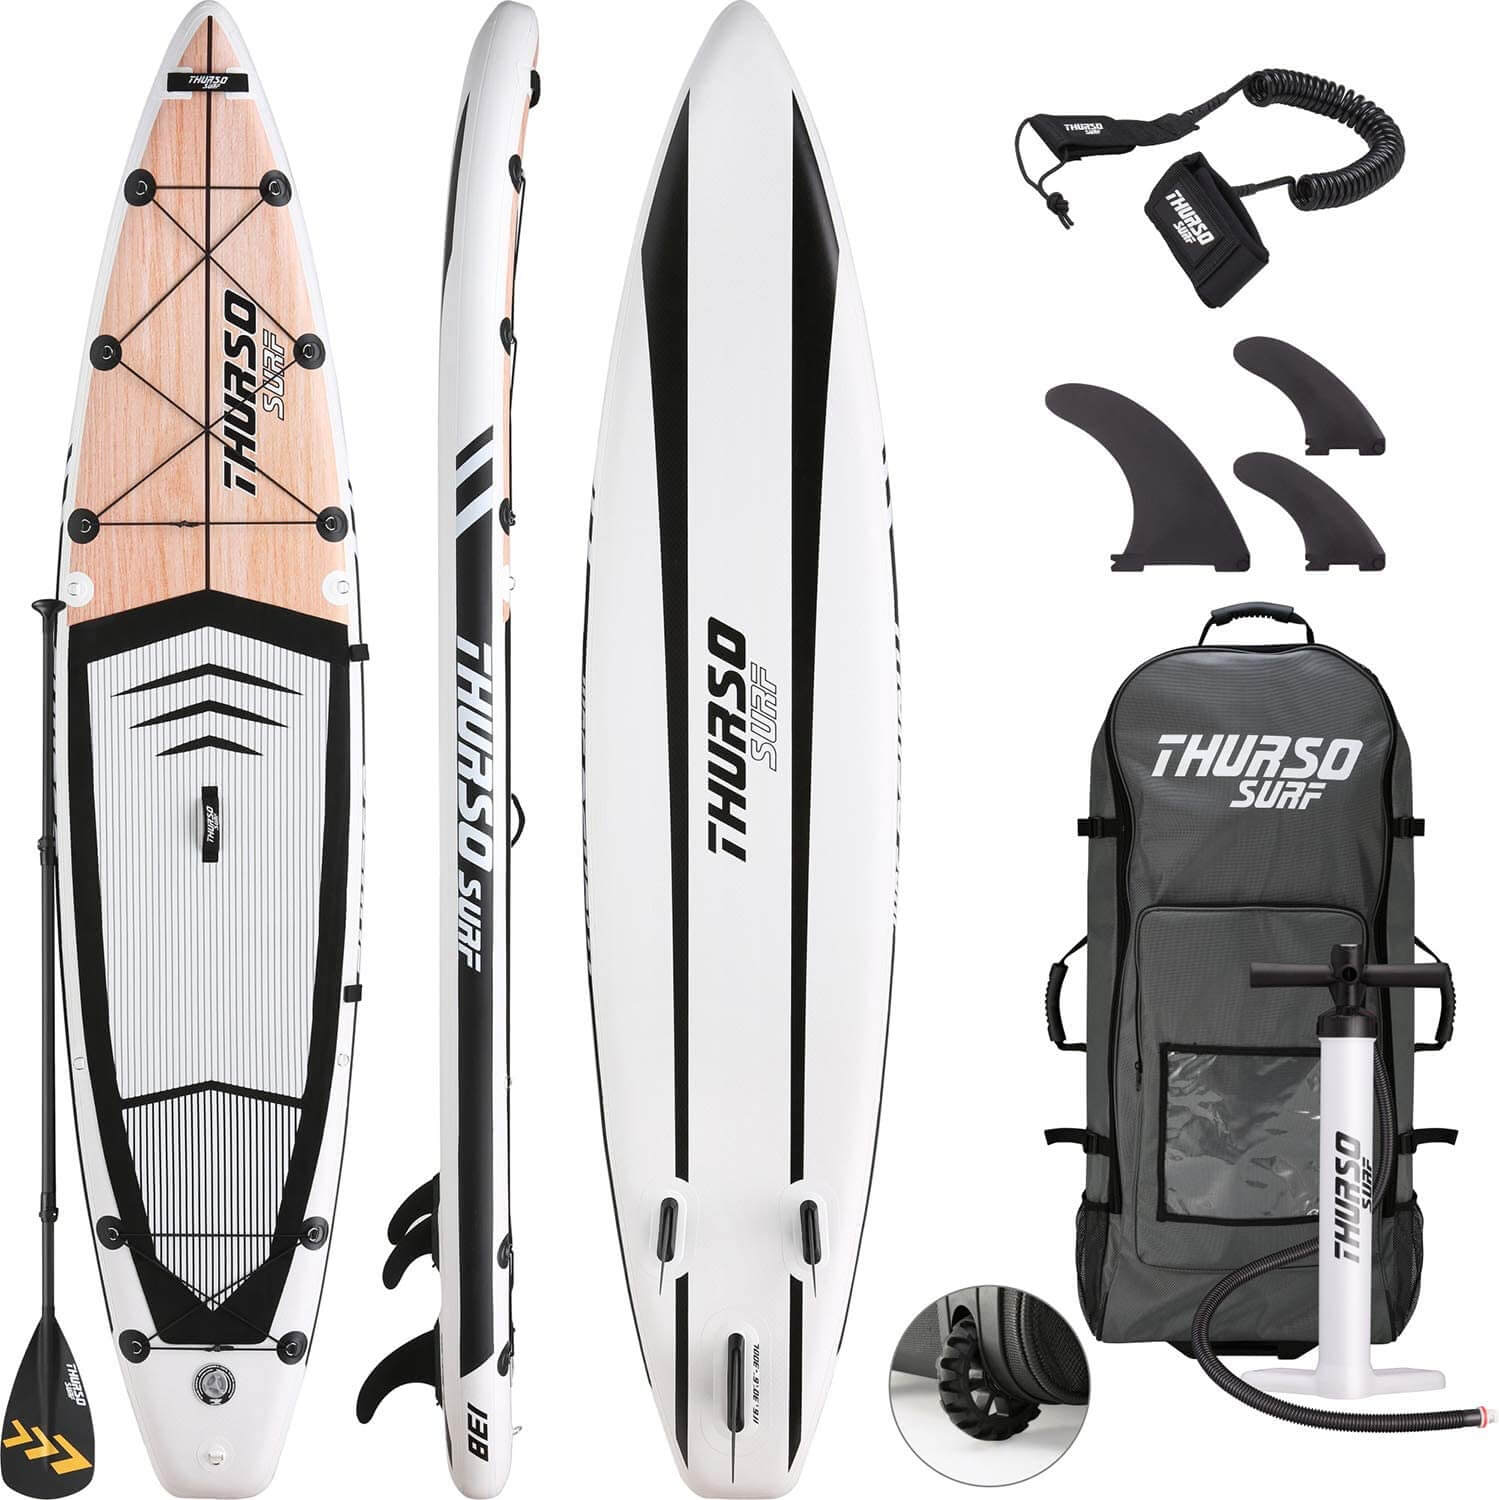 top, bottom, and side view of the thurso surf expedition complete package